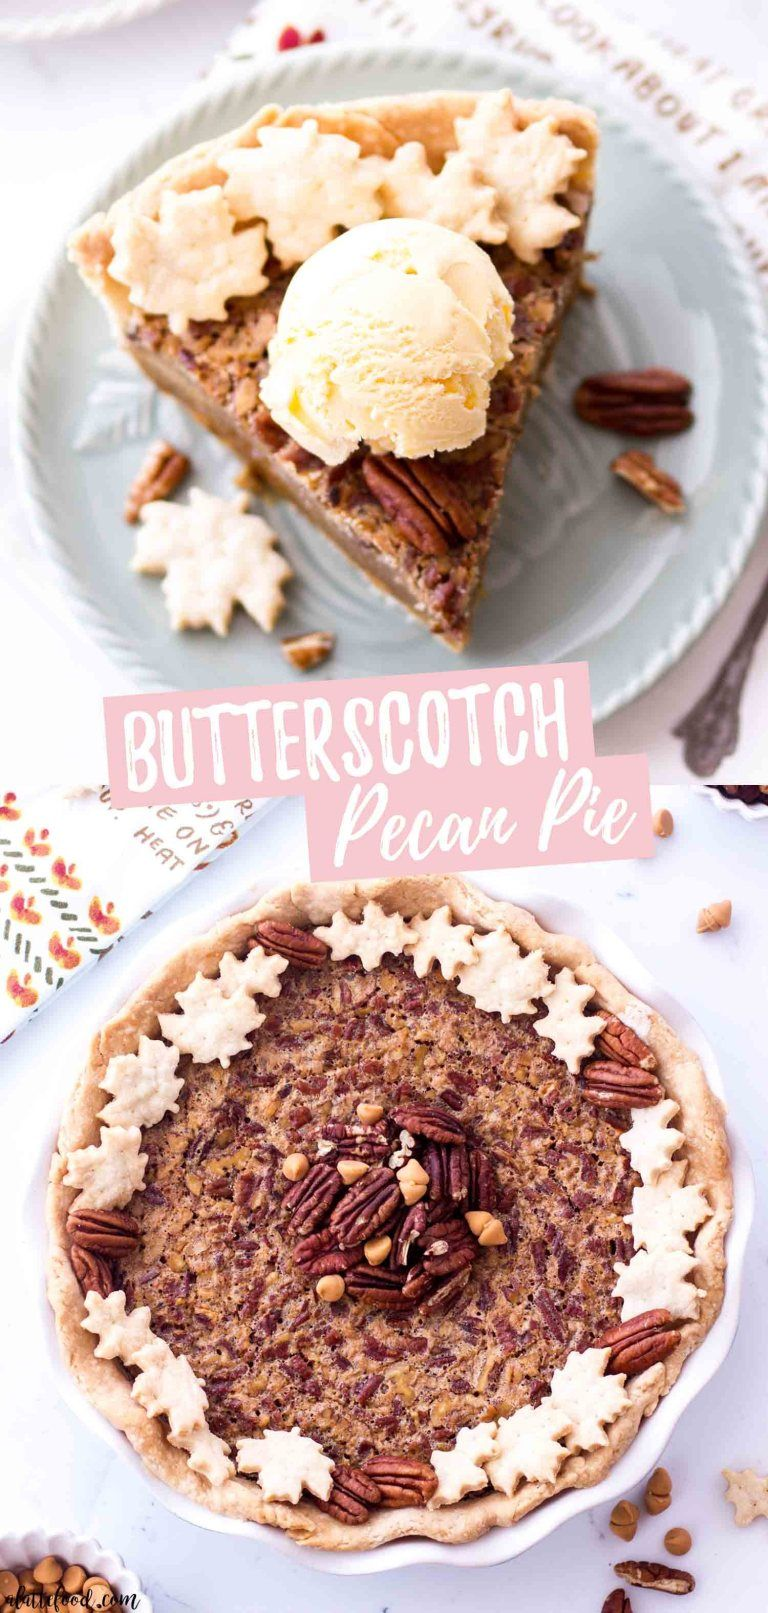 This easy Butterscotch Pecan Pie recipe is a cross between a southern pecan pie (without corn syrup) and an old fashioned butterscotch pie. This homemade butterscotch pecan pie is made in an all butter pie crust and makes the best Thanksgiving pie recipe! #butterscotch #pecan #pie #dessert #recipe #thanksgiving #pecanpierecipe